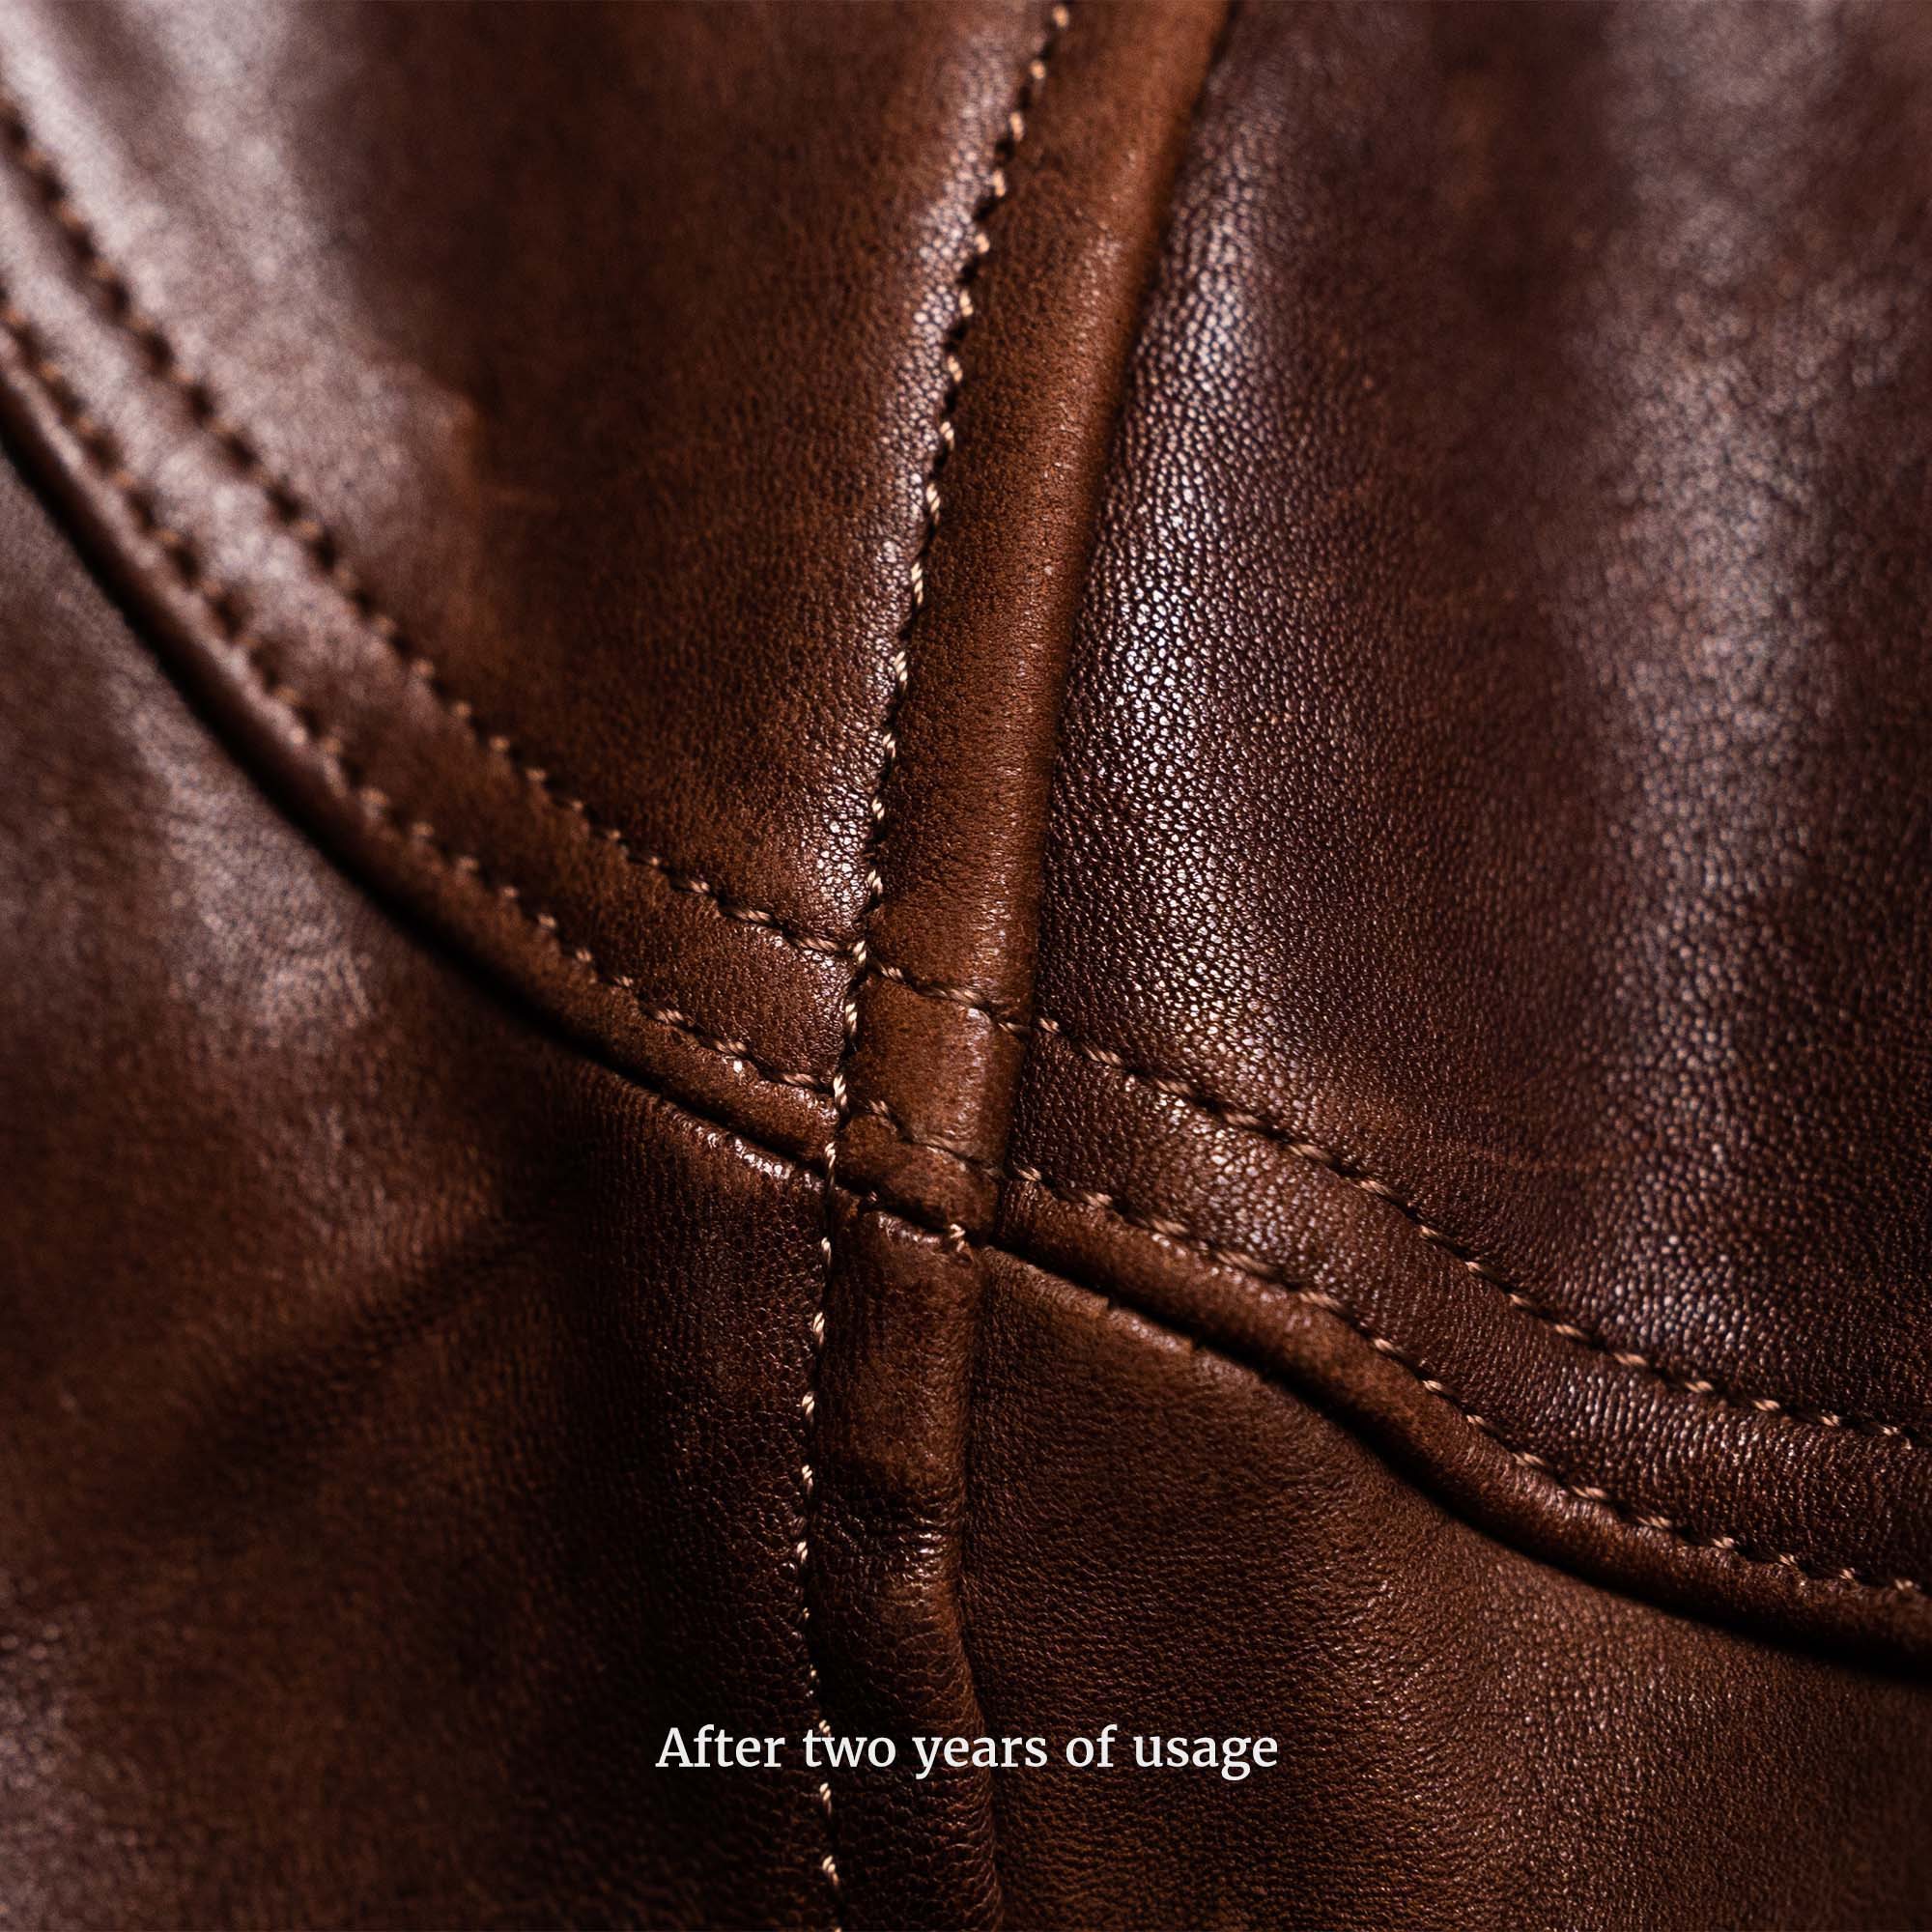 shangri-la-heritage-cafe-racer-brown-lambskin-jacket-still-life-new-shoulder-detail-used